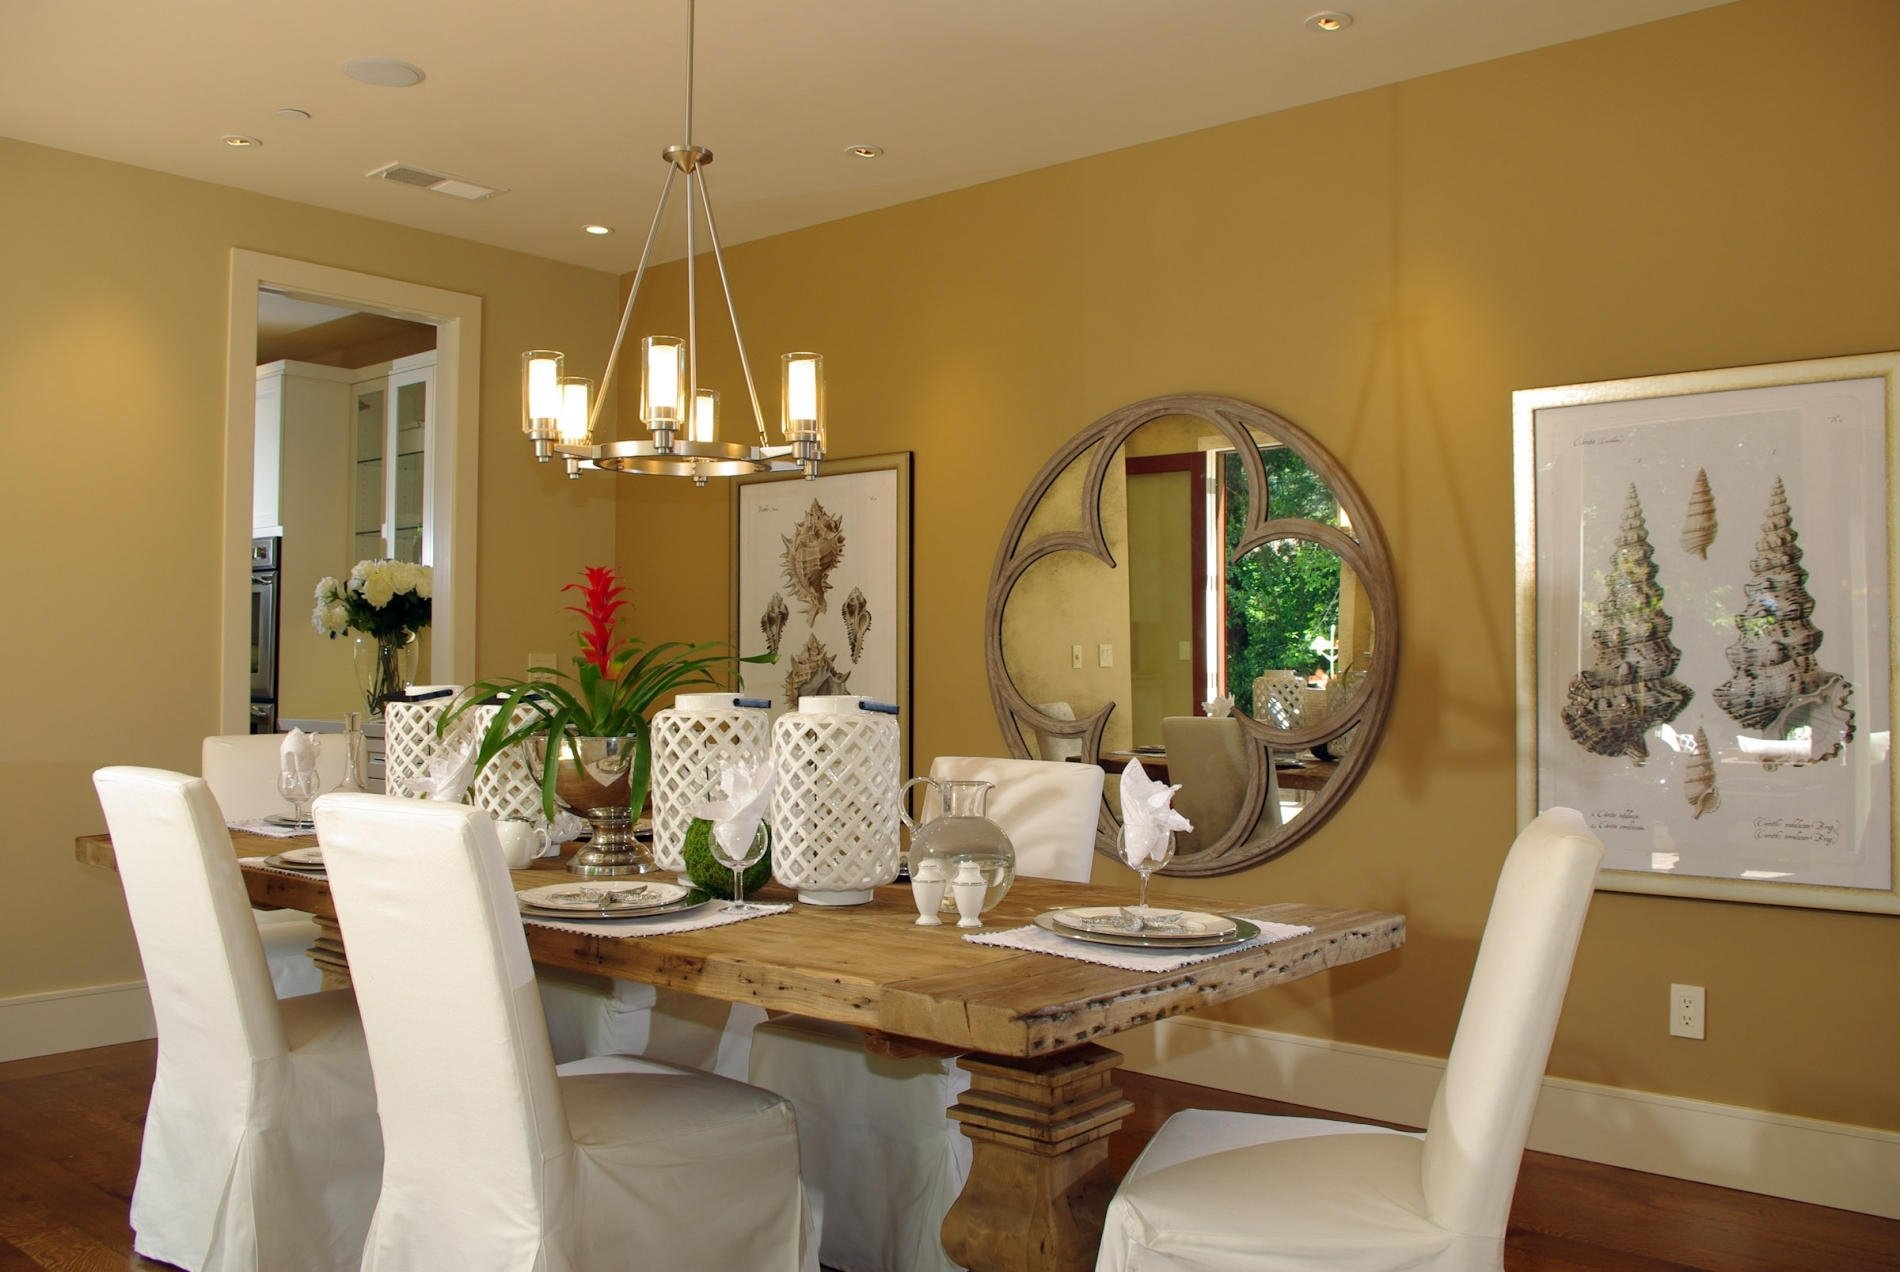 10 Fashionable Decorating Ideas For Dining Room dining room a beautiful dining room table decorating ideas with 1 2020